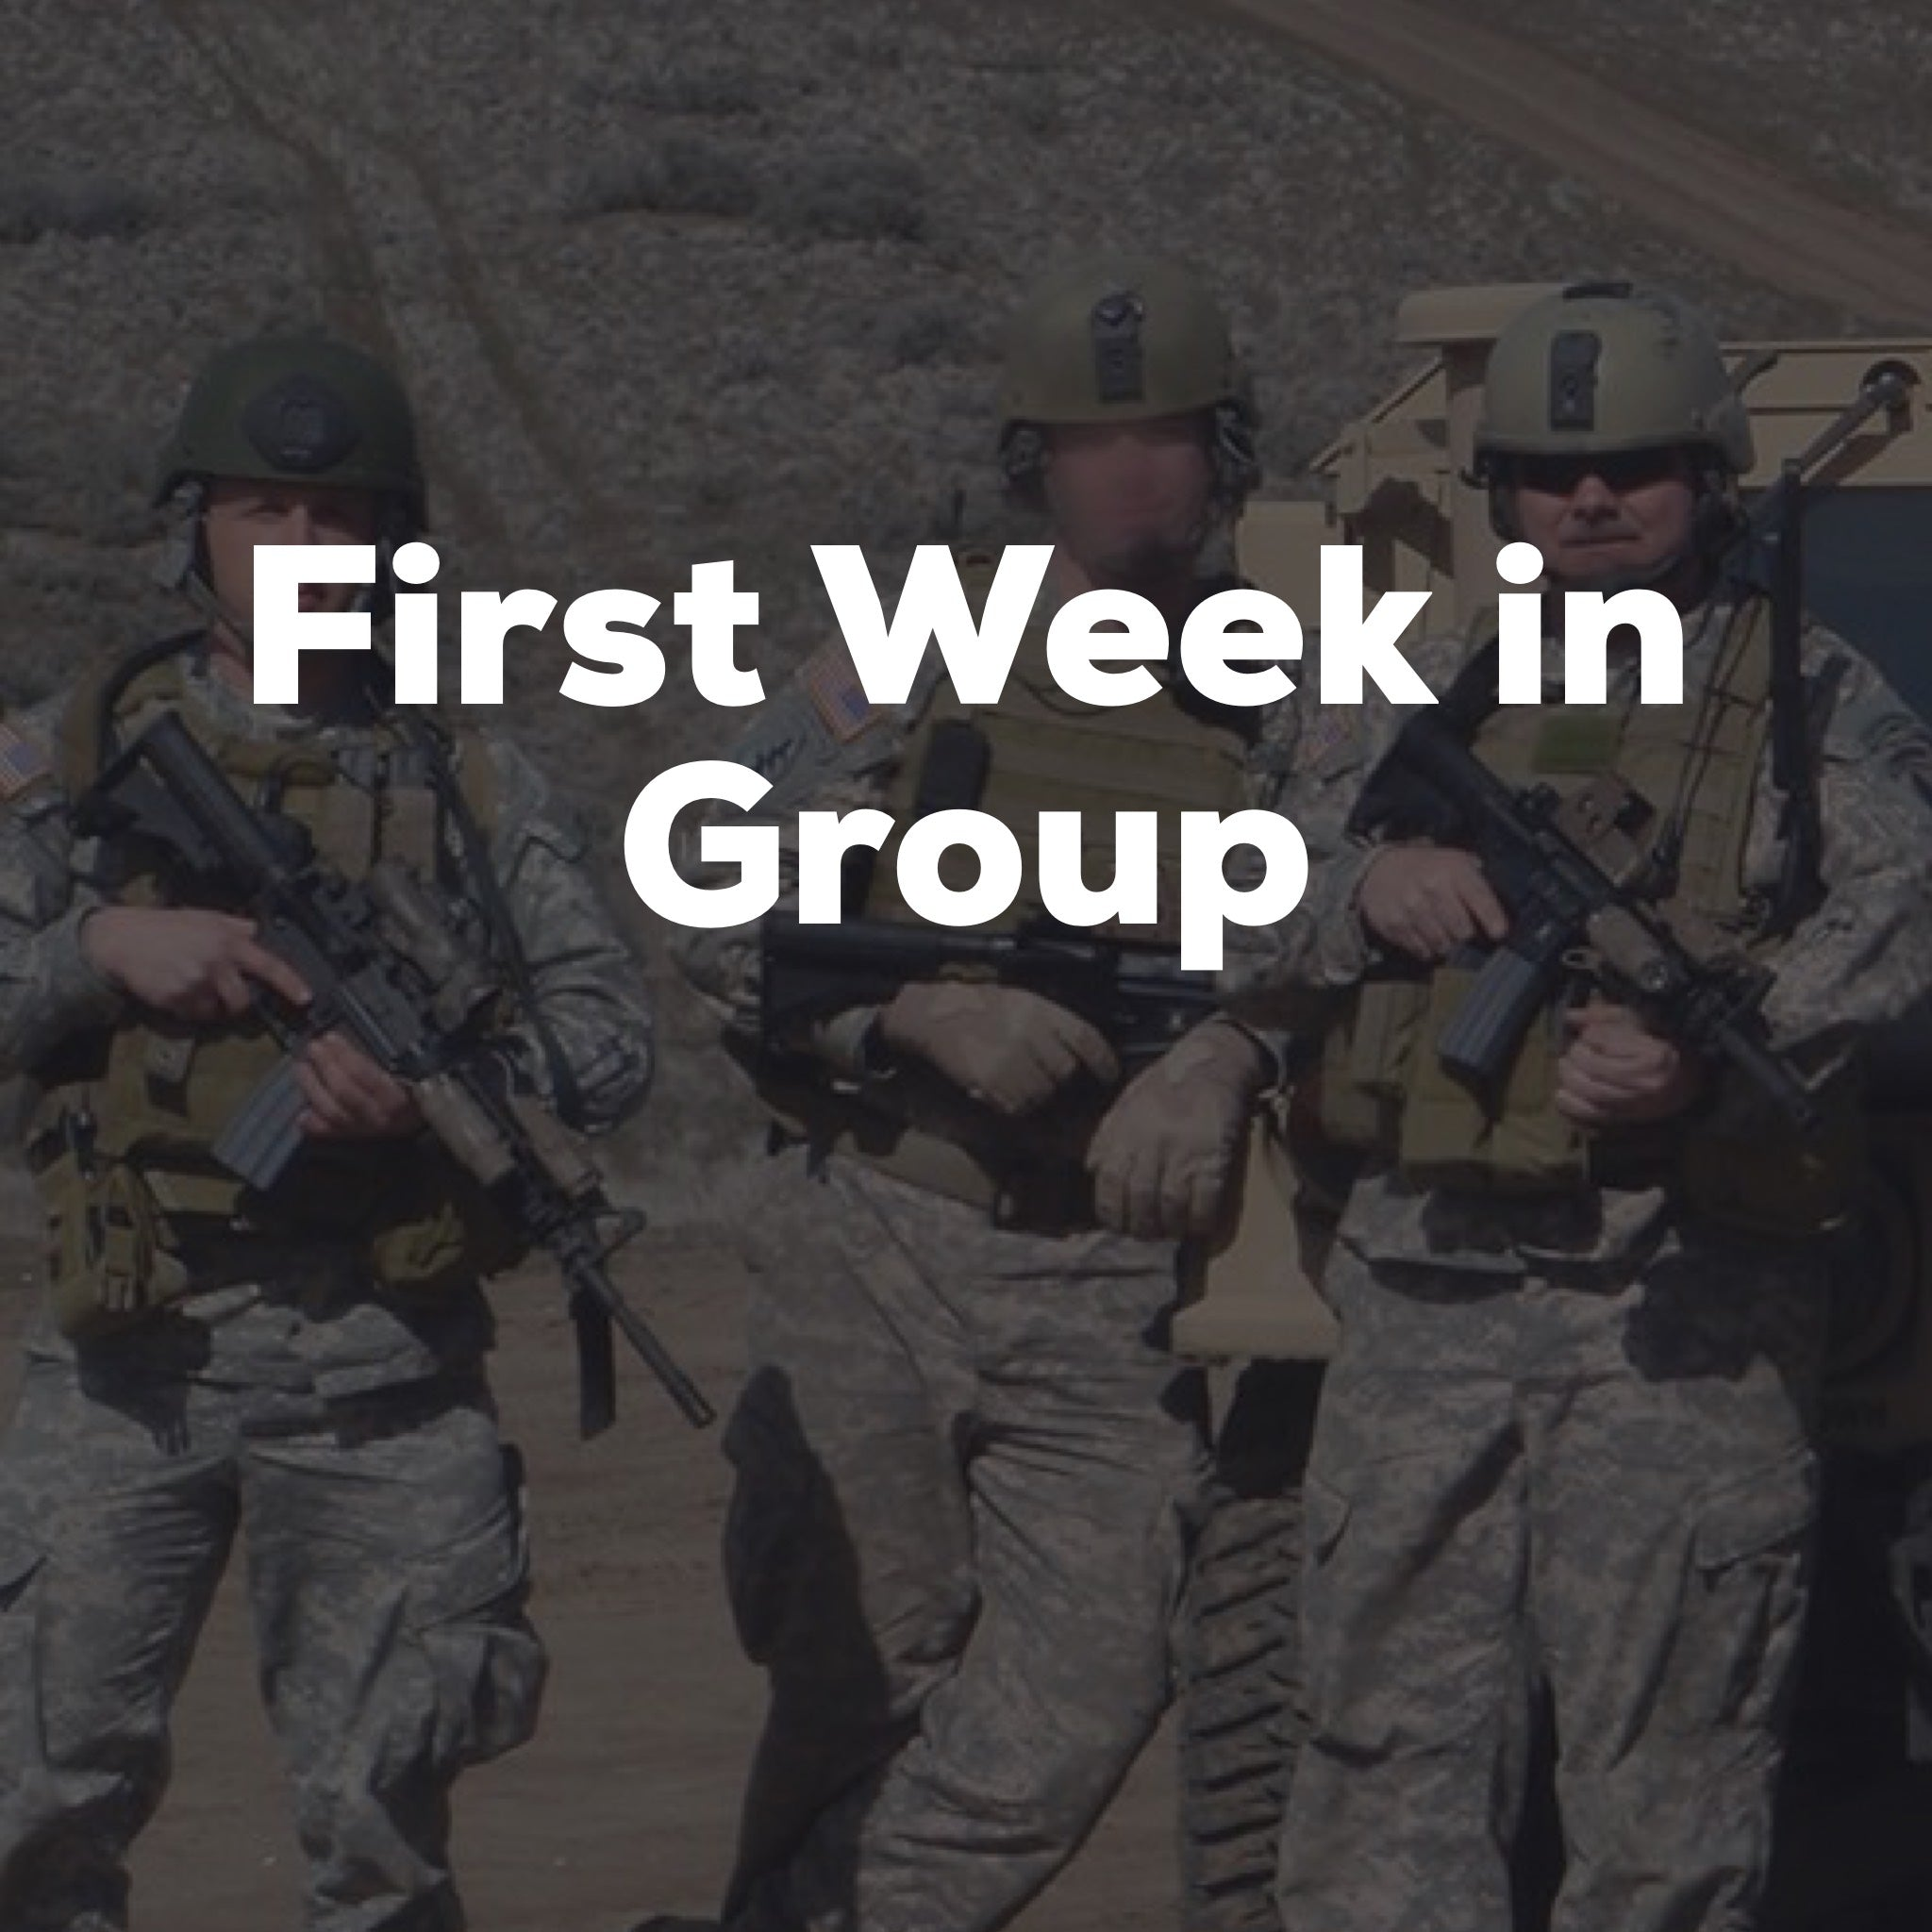 First Week in Group--Expectations vs. Reality